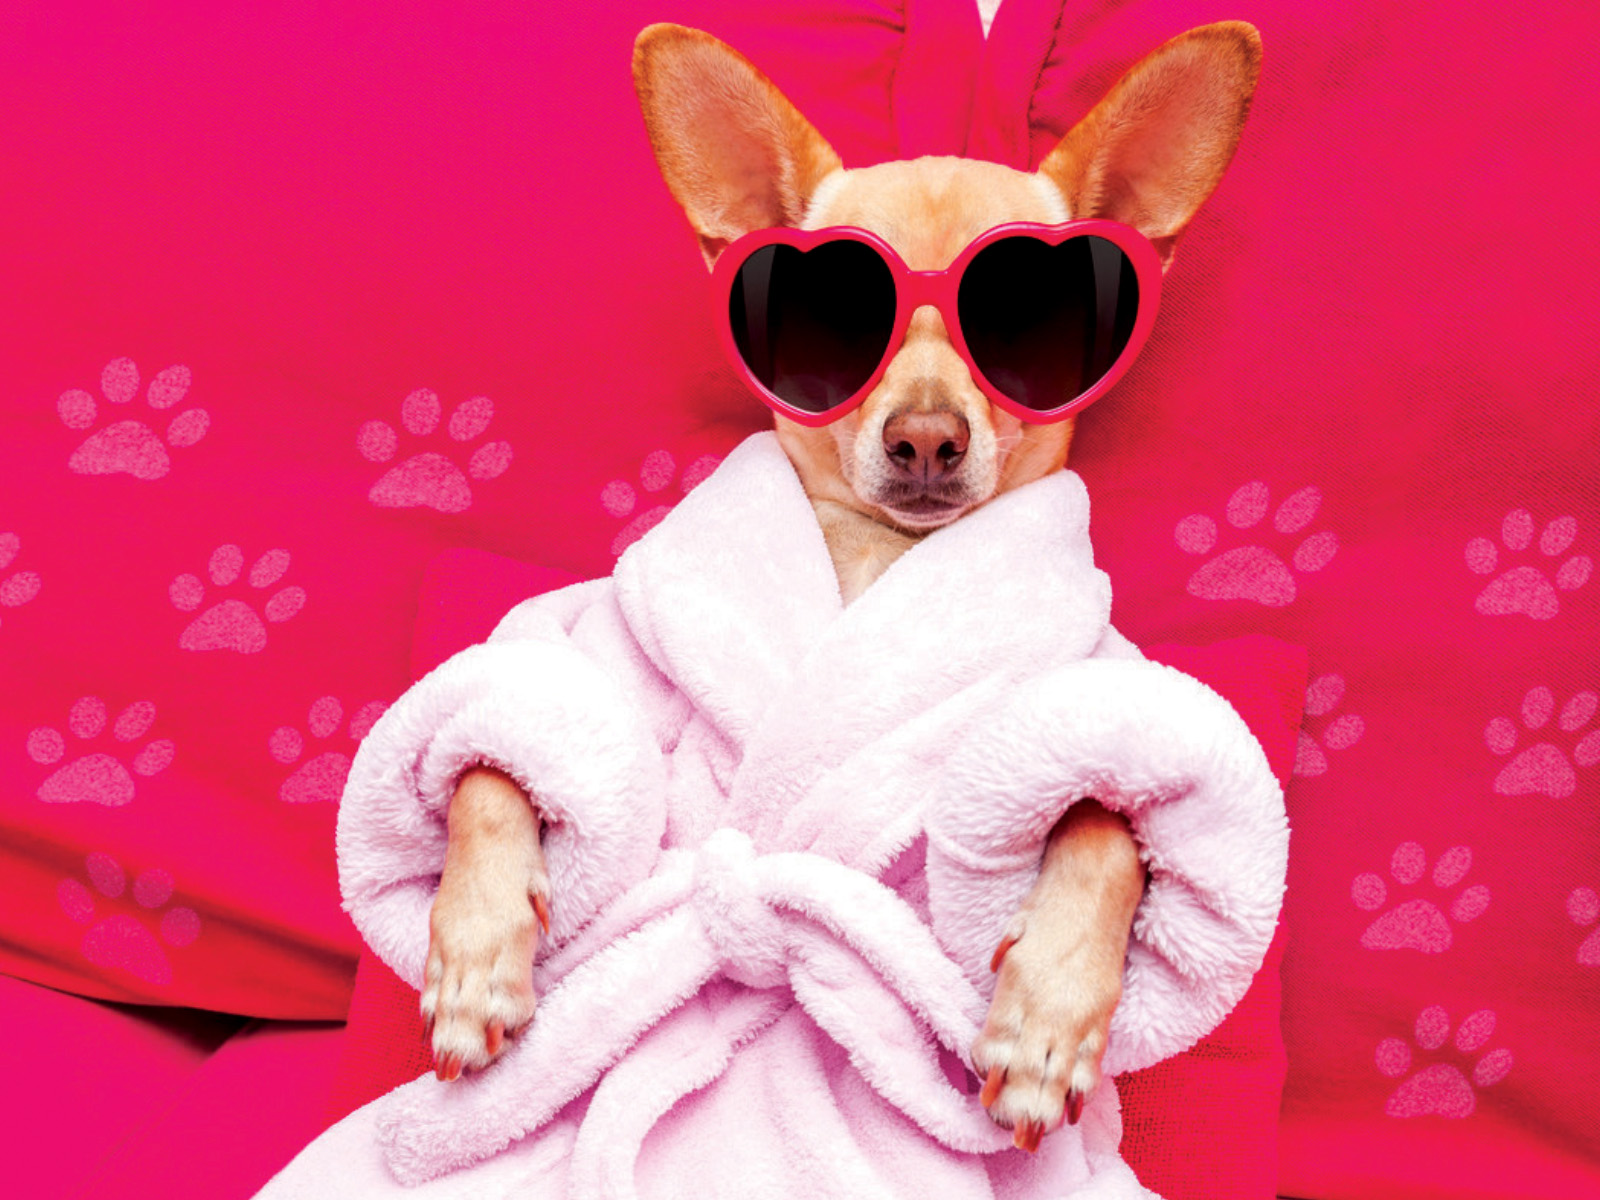 Small dog with pink bathrobe and pink heart-shaped sunglasses